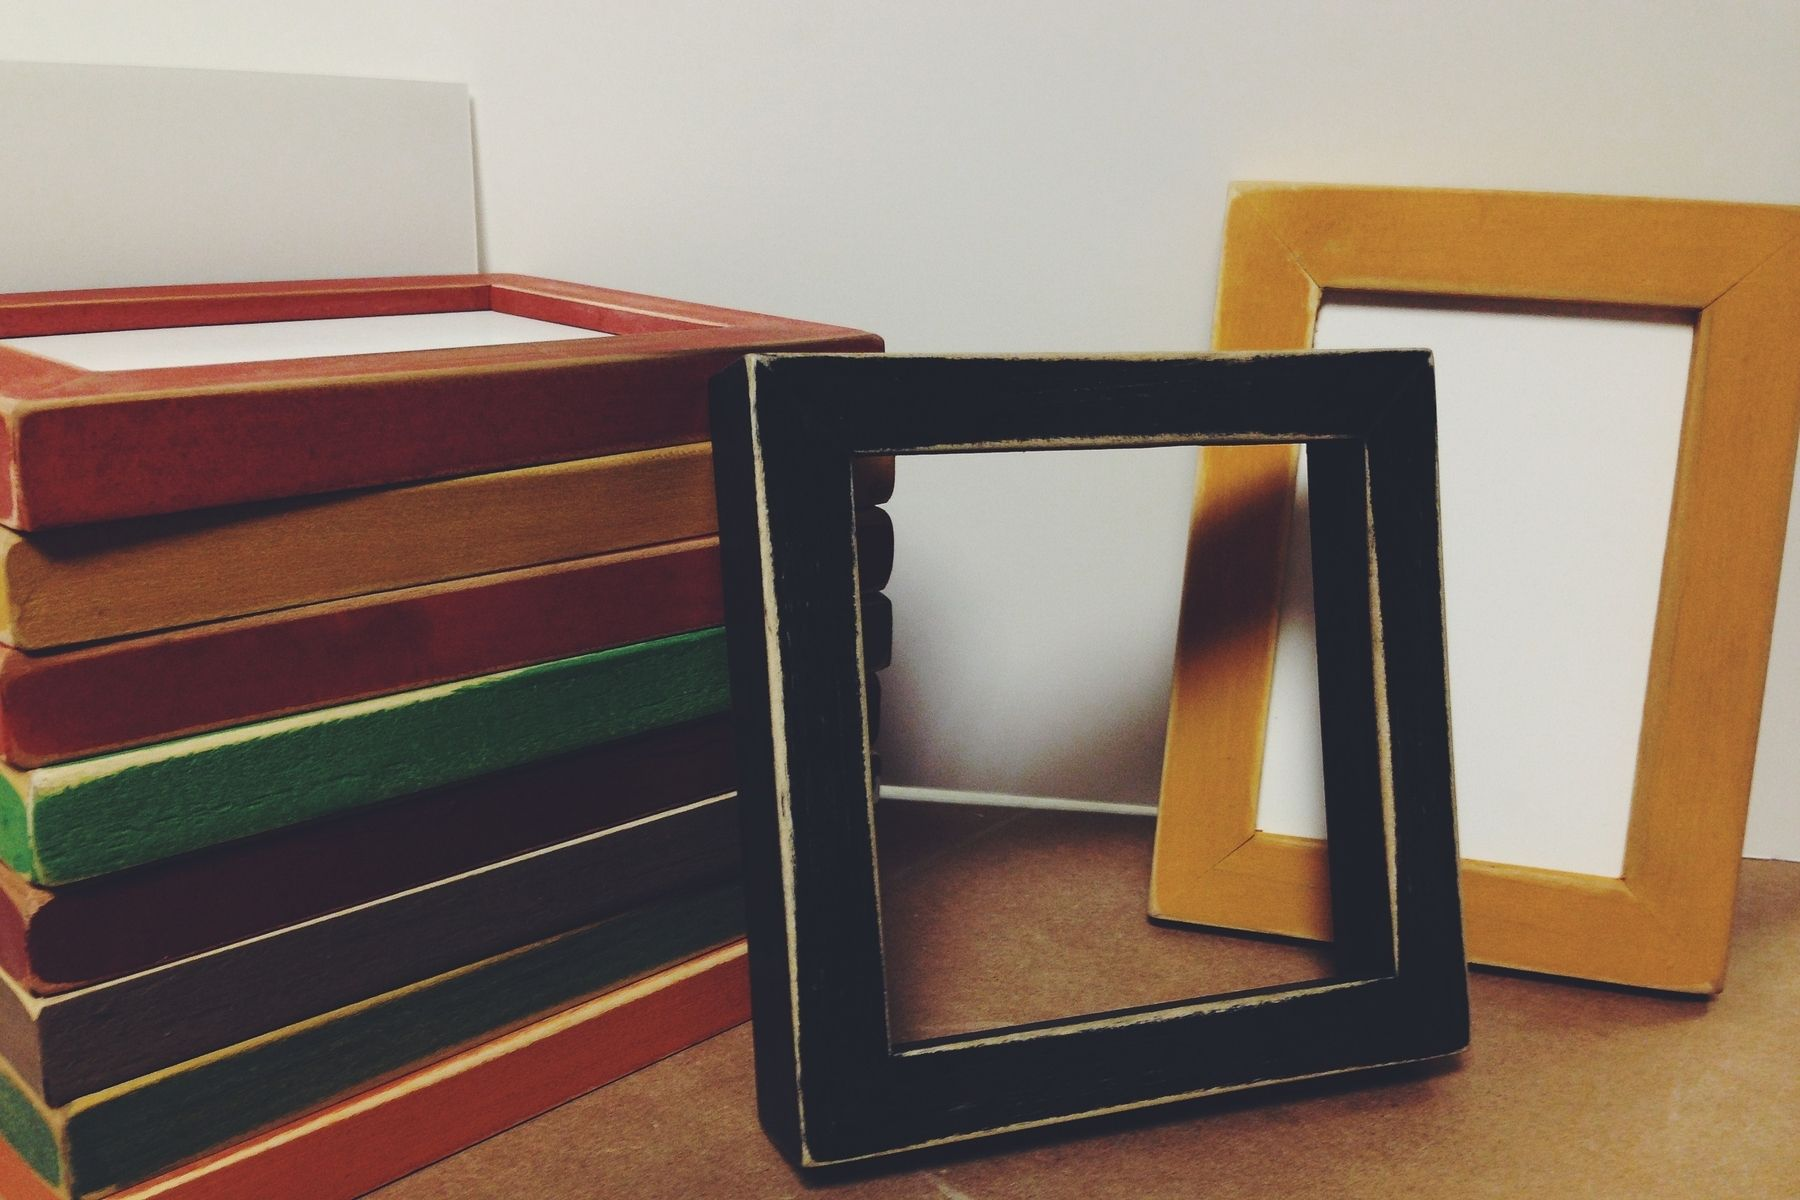 custom made instagram photo picture frames 4x4 5x5 6x6 8x8 10x10 8x10 5x7 4x6 colorful